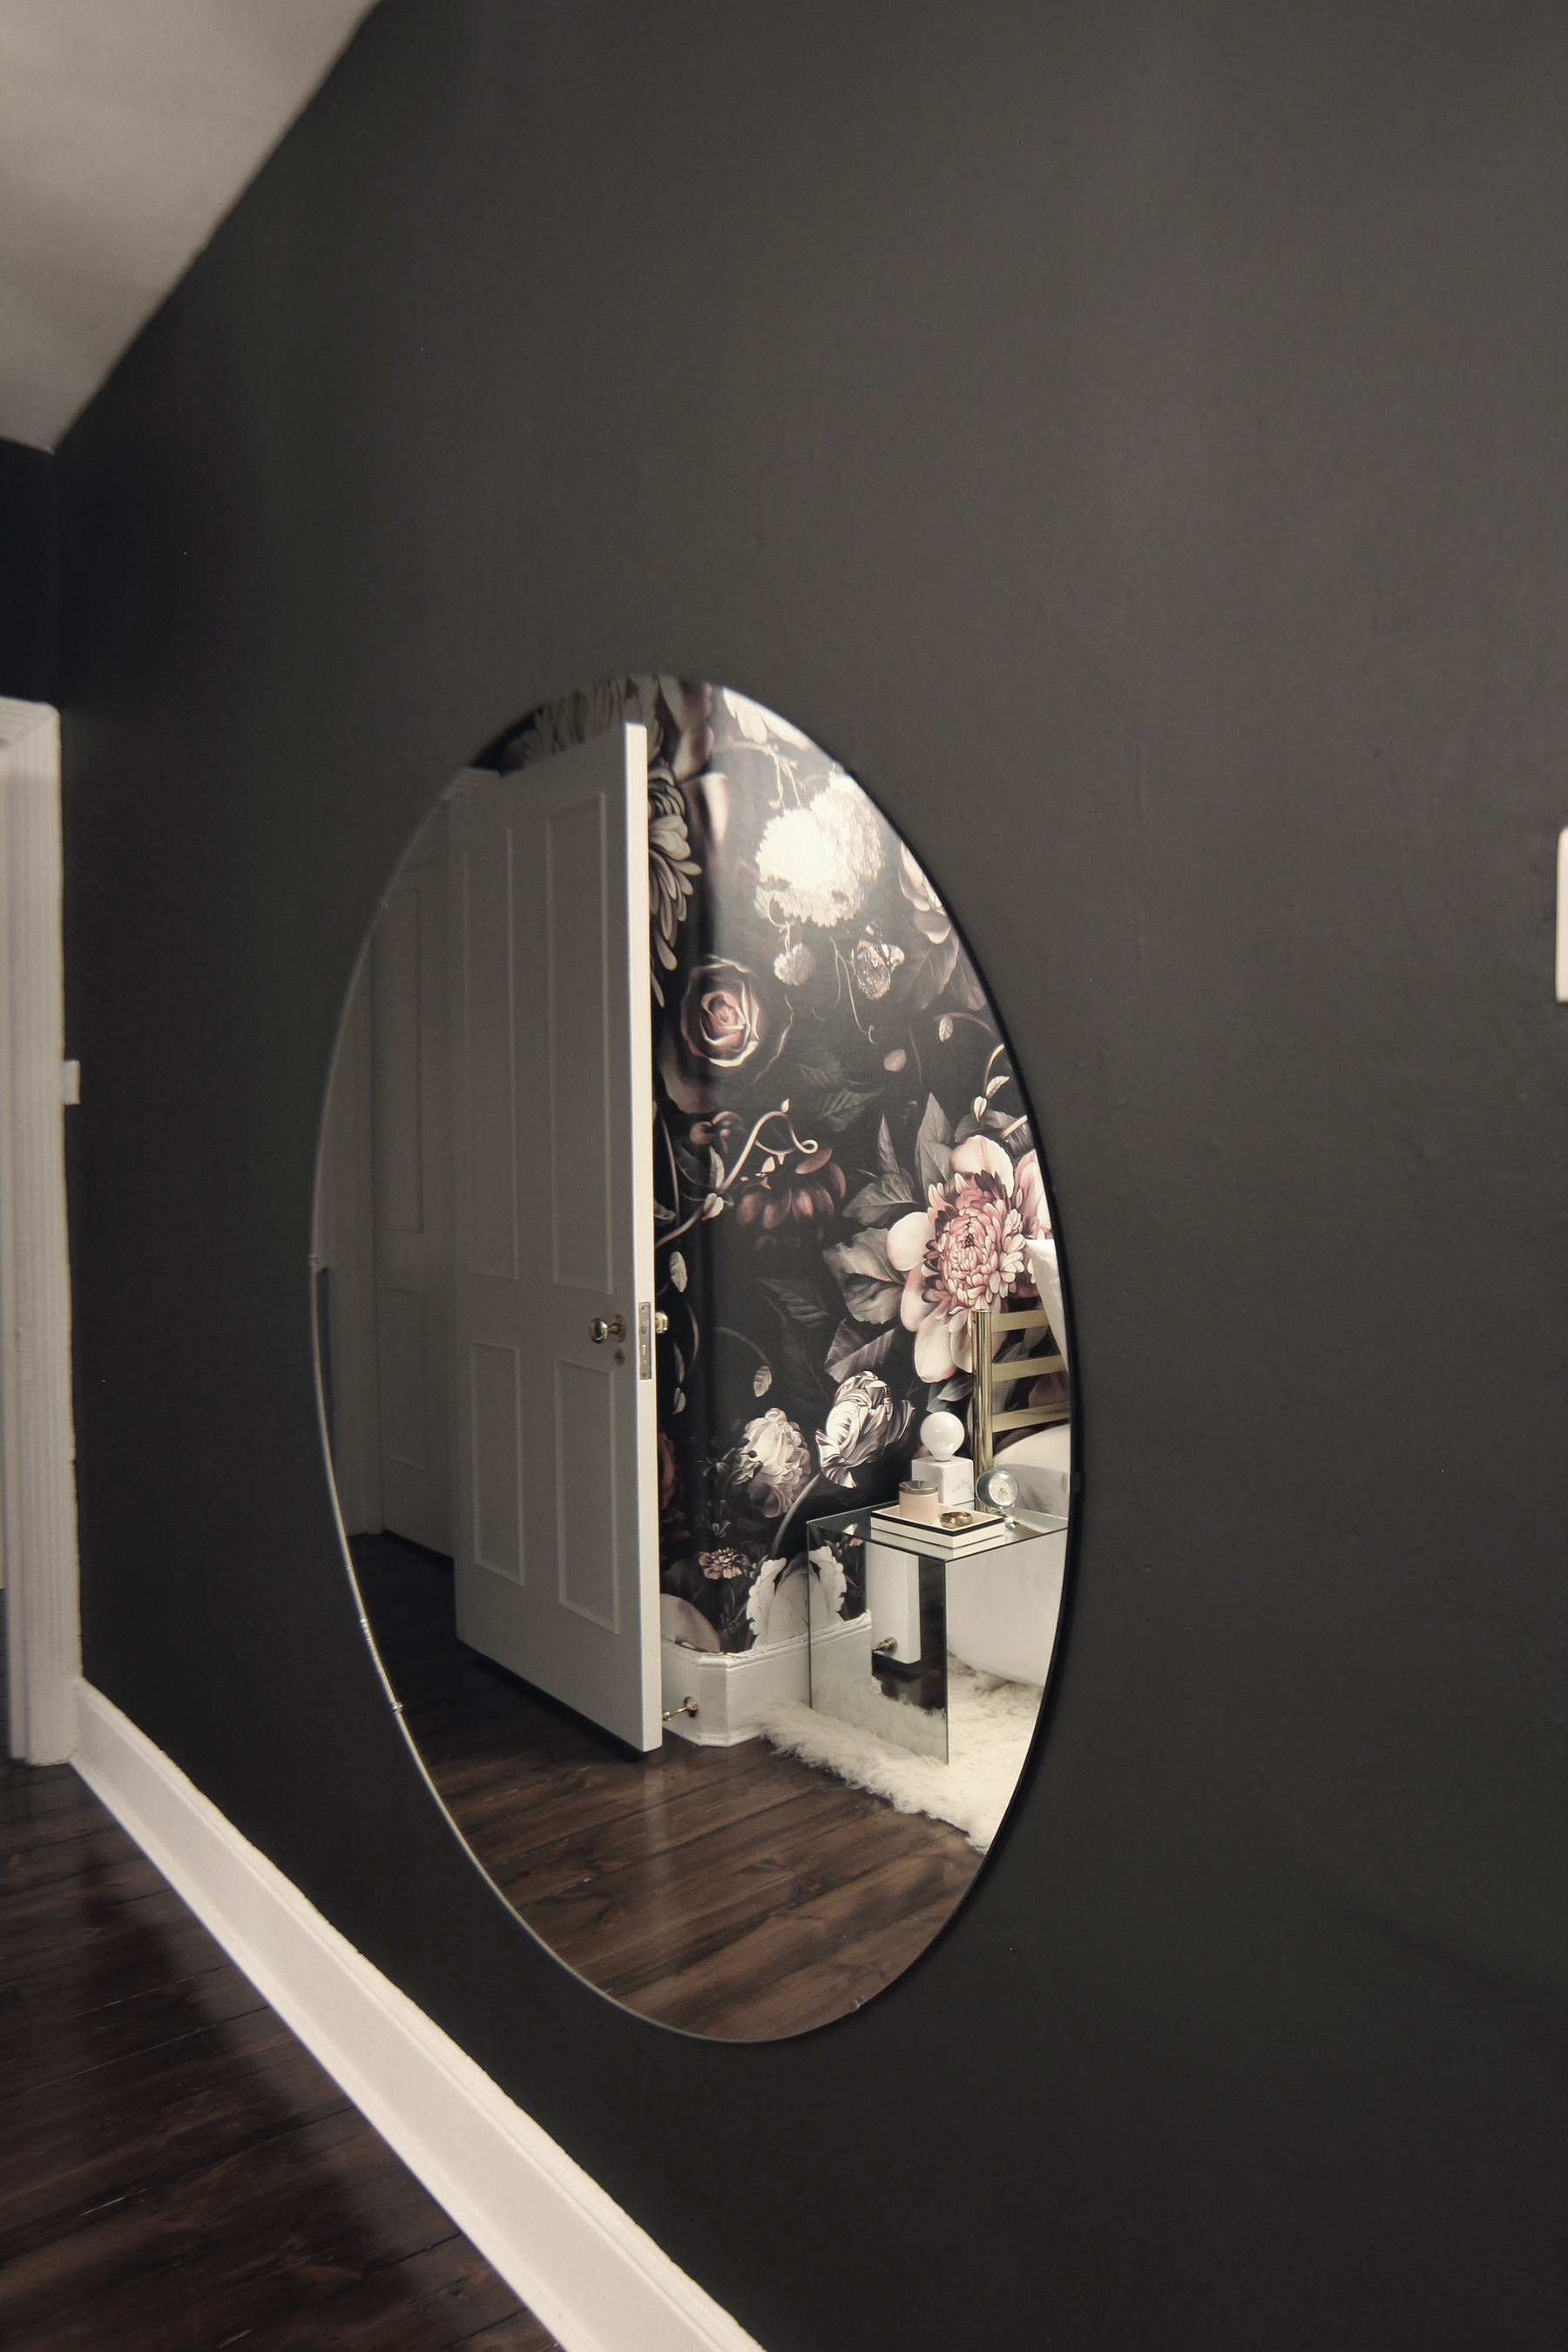 Preciously Me blog : One Room Challenge - Bedroom makeover reveal. Ellie Cashman Dark Floral wallpaper and Oversized round mirror